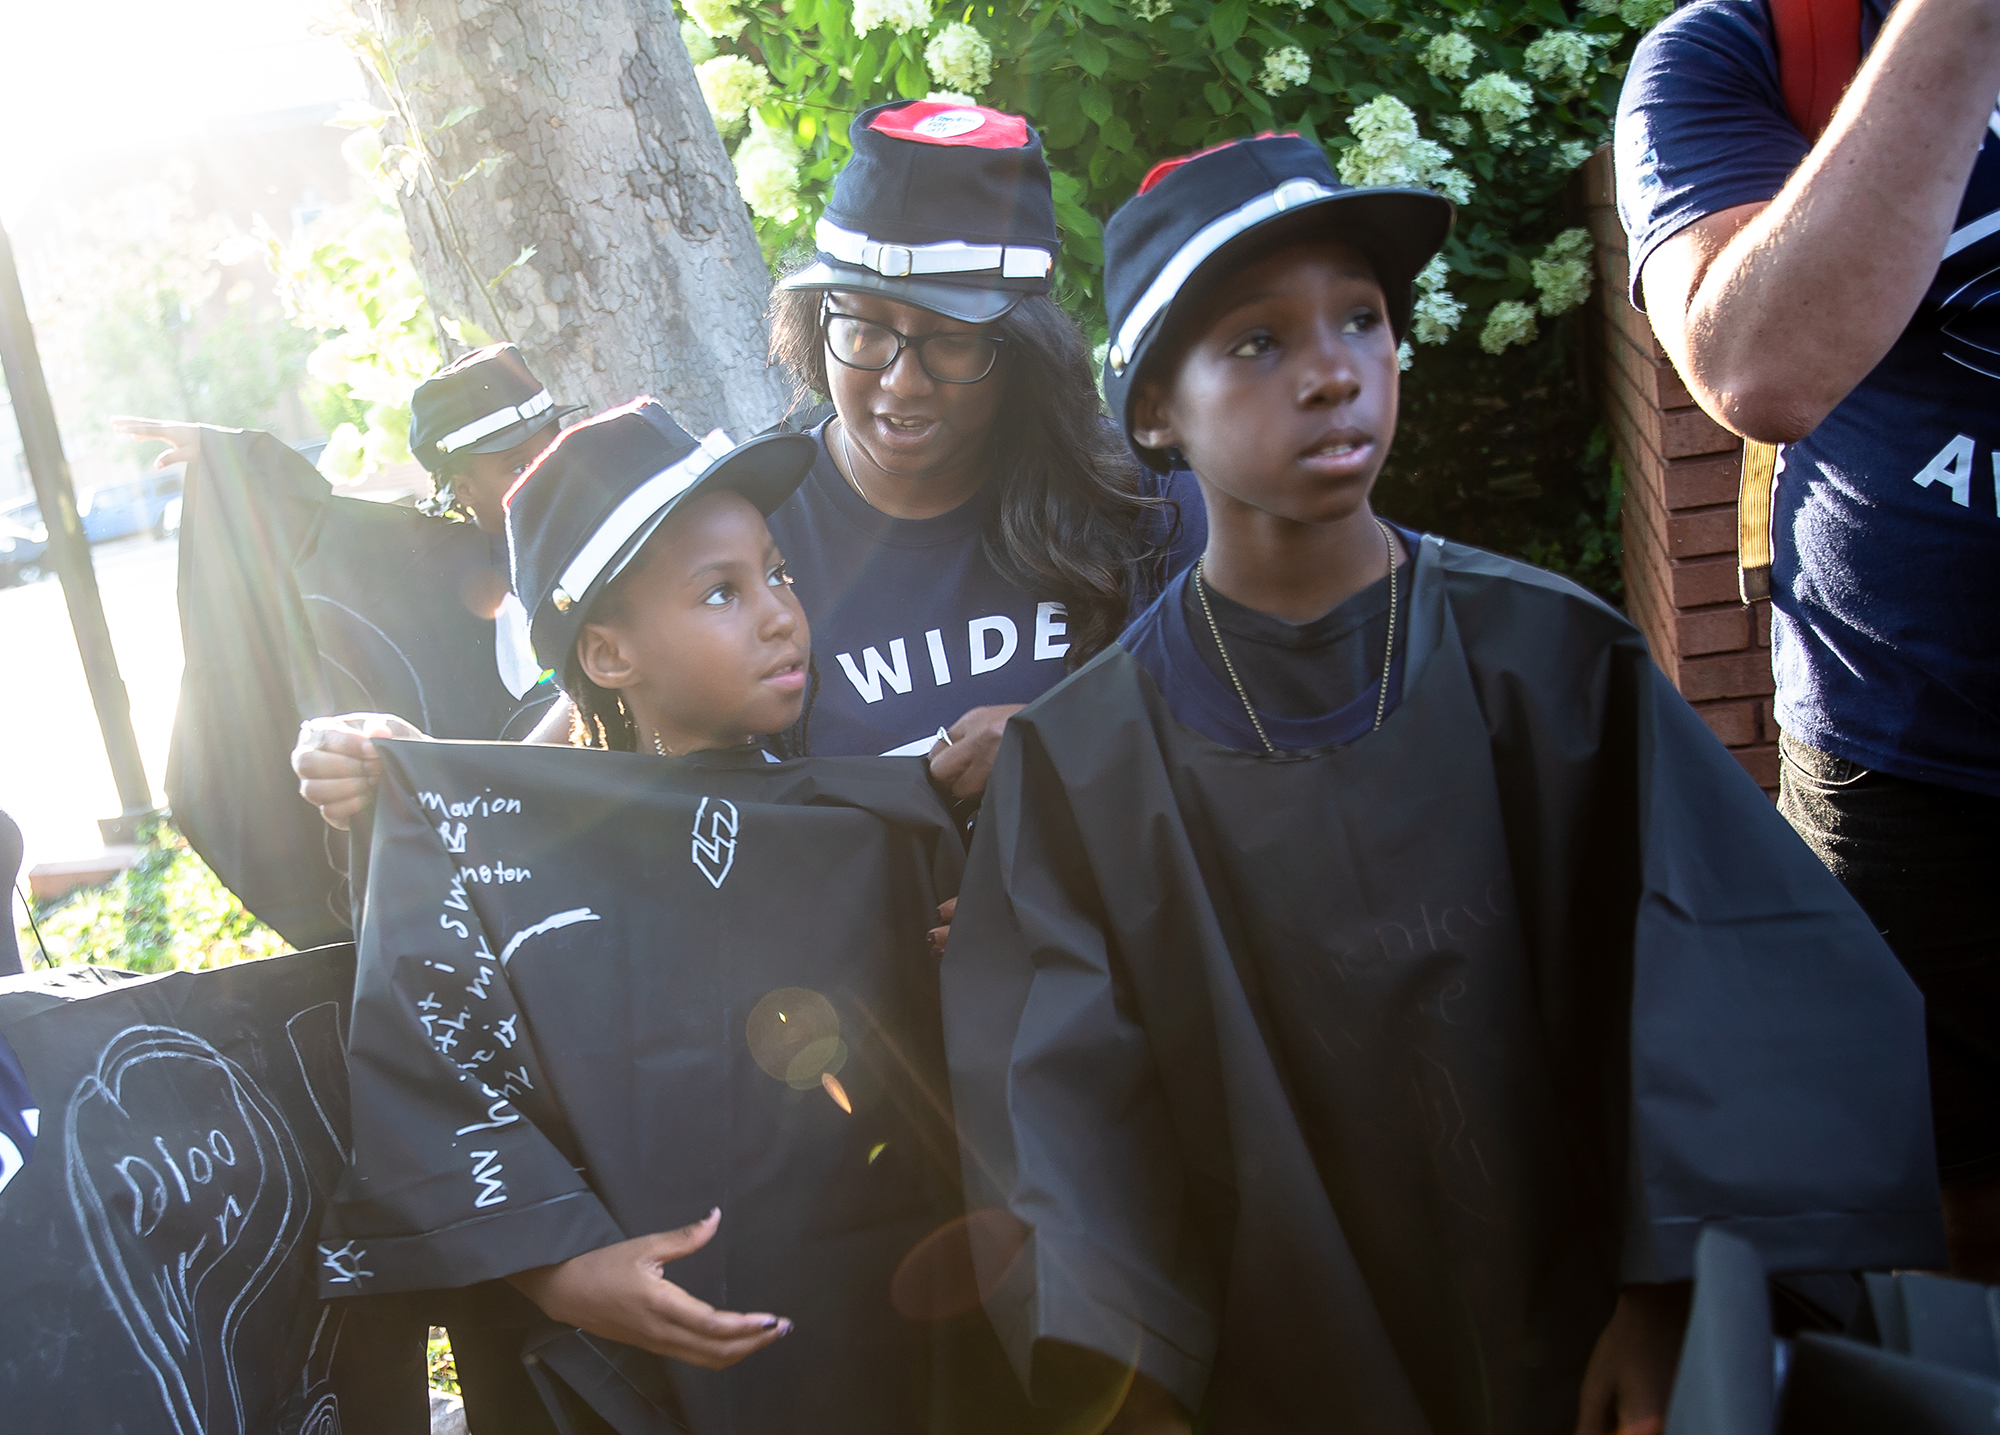 Jameia Ware, 8, center, dawns the black cap and hat for the uniforms of the Wide Awakes that she and her fellow youth from the Springfield Urban League made to use during the Lincoln Wide Awake Parade, a re-enactment of an 1860 parade to support Abraham LincolnÕs presidential candidacy, to the Old State Capitol from the Lincoln Home, Saturday, Aug. 4, 2018, in Springfield, Ill. The Wide Awakes, who wore black caps and black hats when they marched, got their name from a small group of young self-named supporters who impressed Lincoln at a political rally, according to the Journal of American History. [Justin L. Fowler/The State Journal-Register]